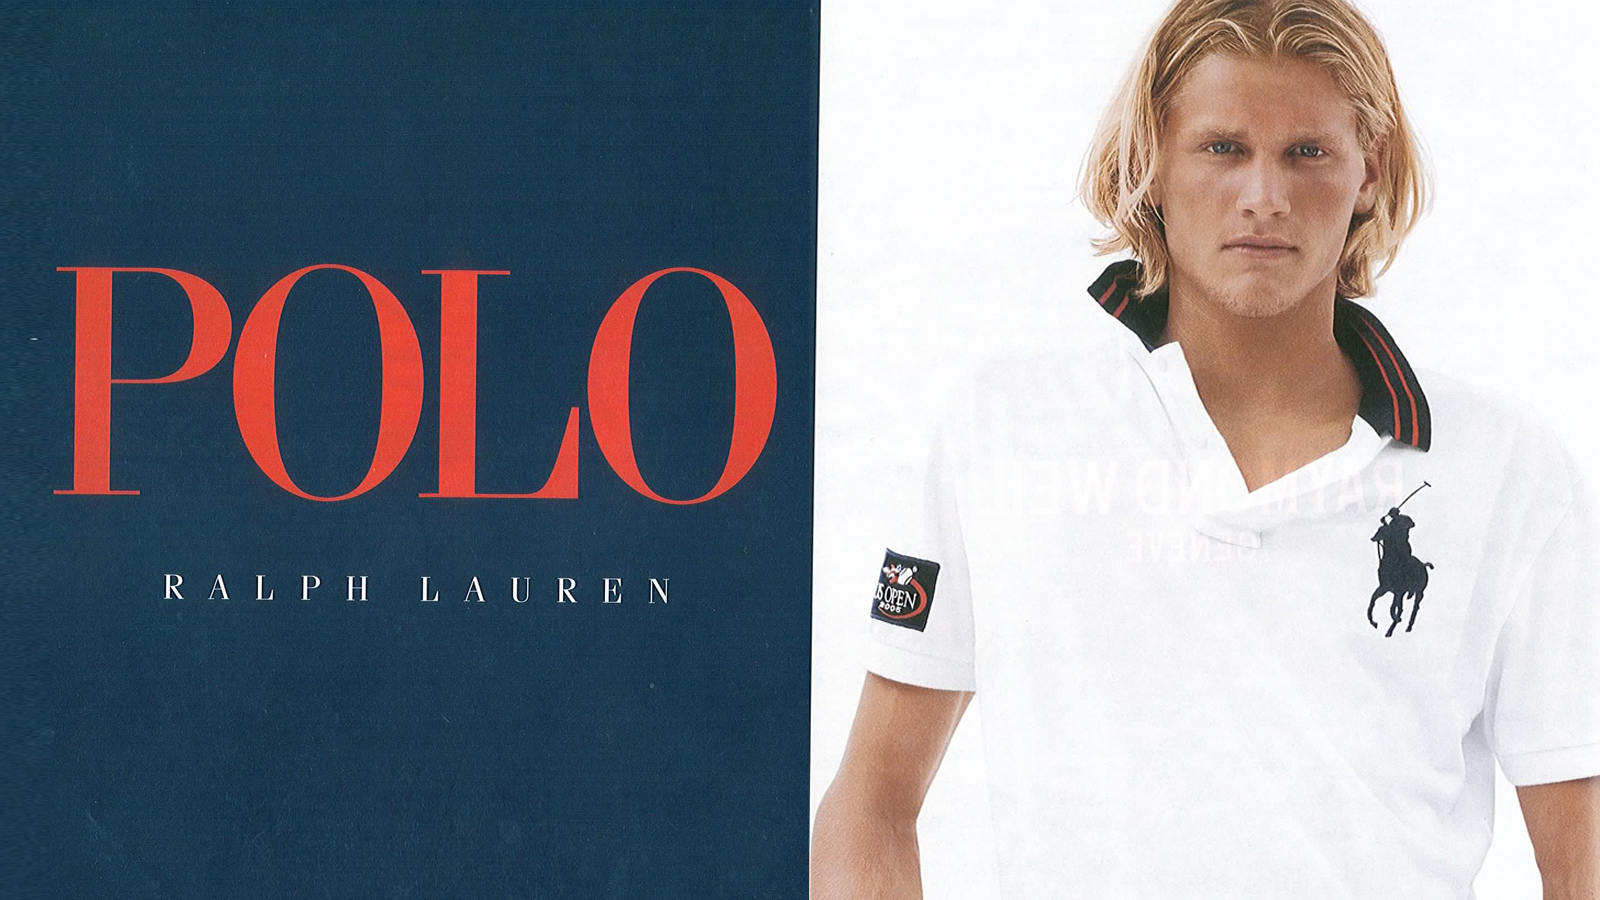 Steele Irene Marie Models for Polo